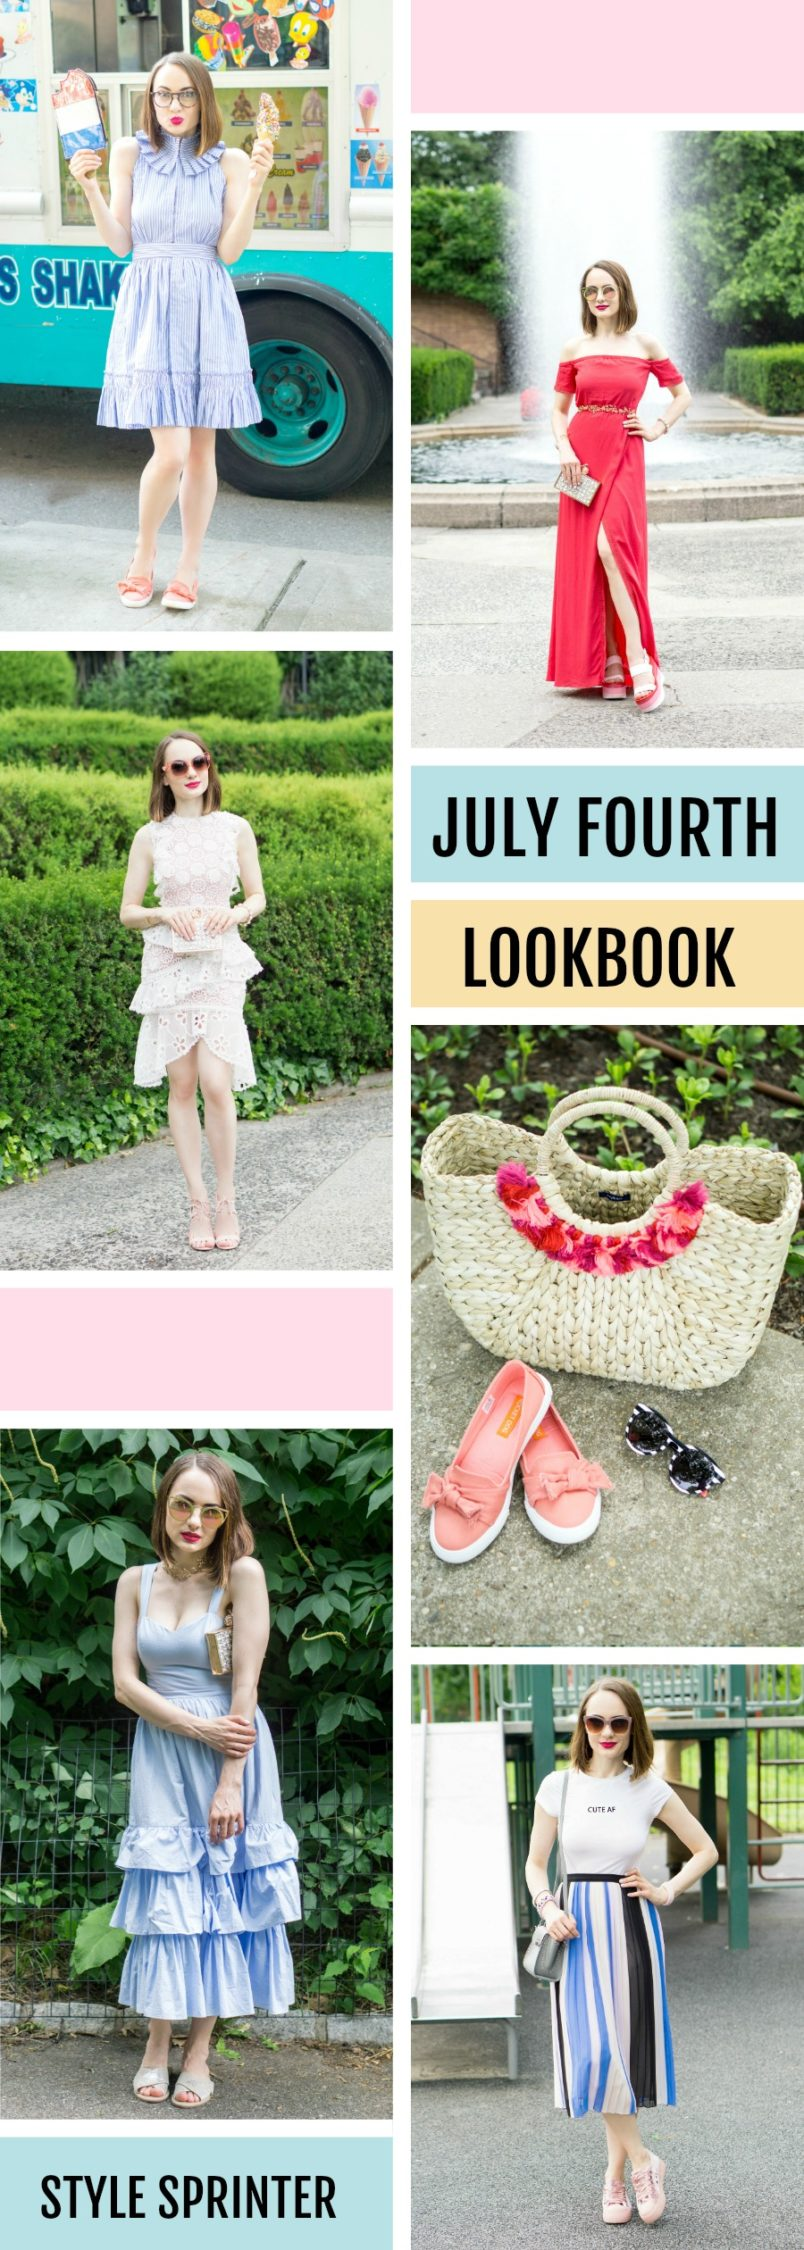 Fourth of July 2017 Lookbook - Outfit Ideas for Any Occasion